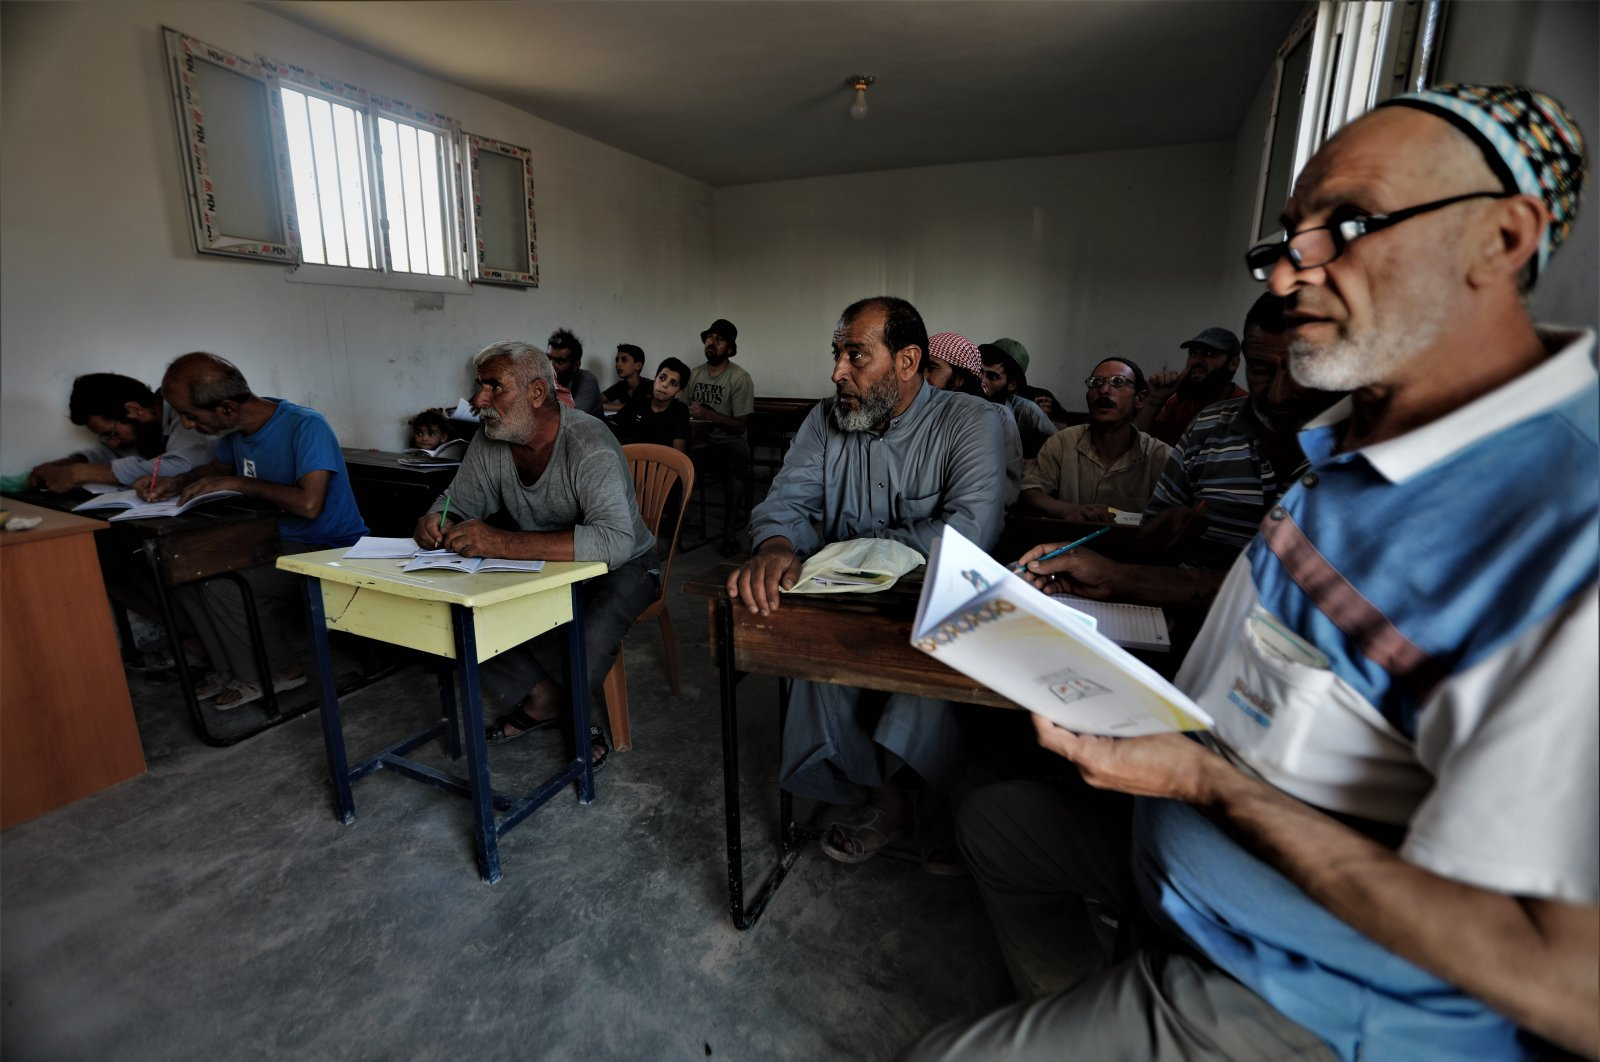 Adults attend a literacy class at a course run by the local council in al-Bab, northern Syria, Sept. 8, 2021. (AA Photo)